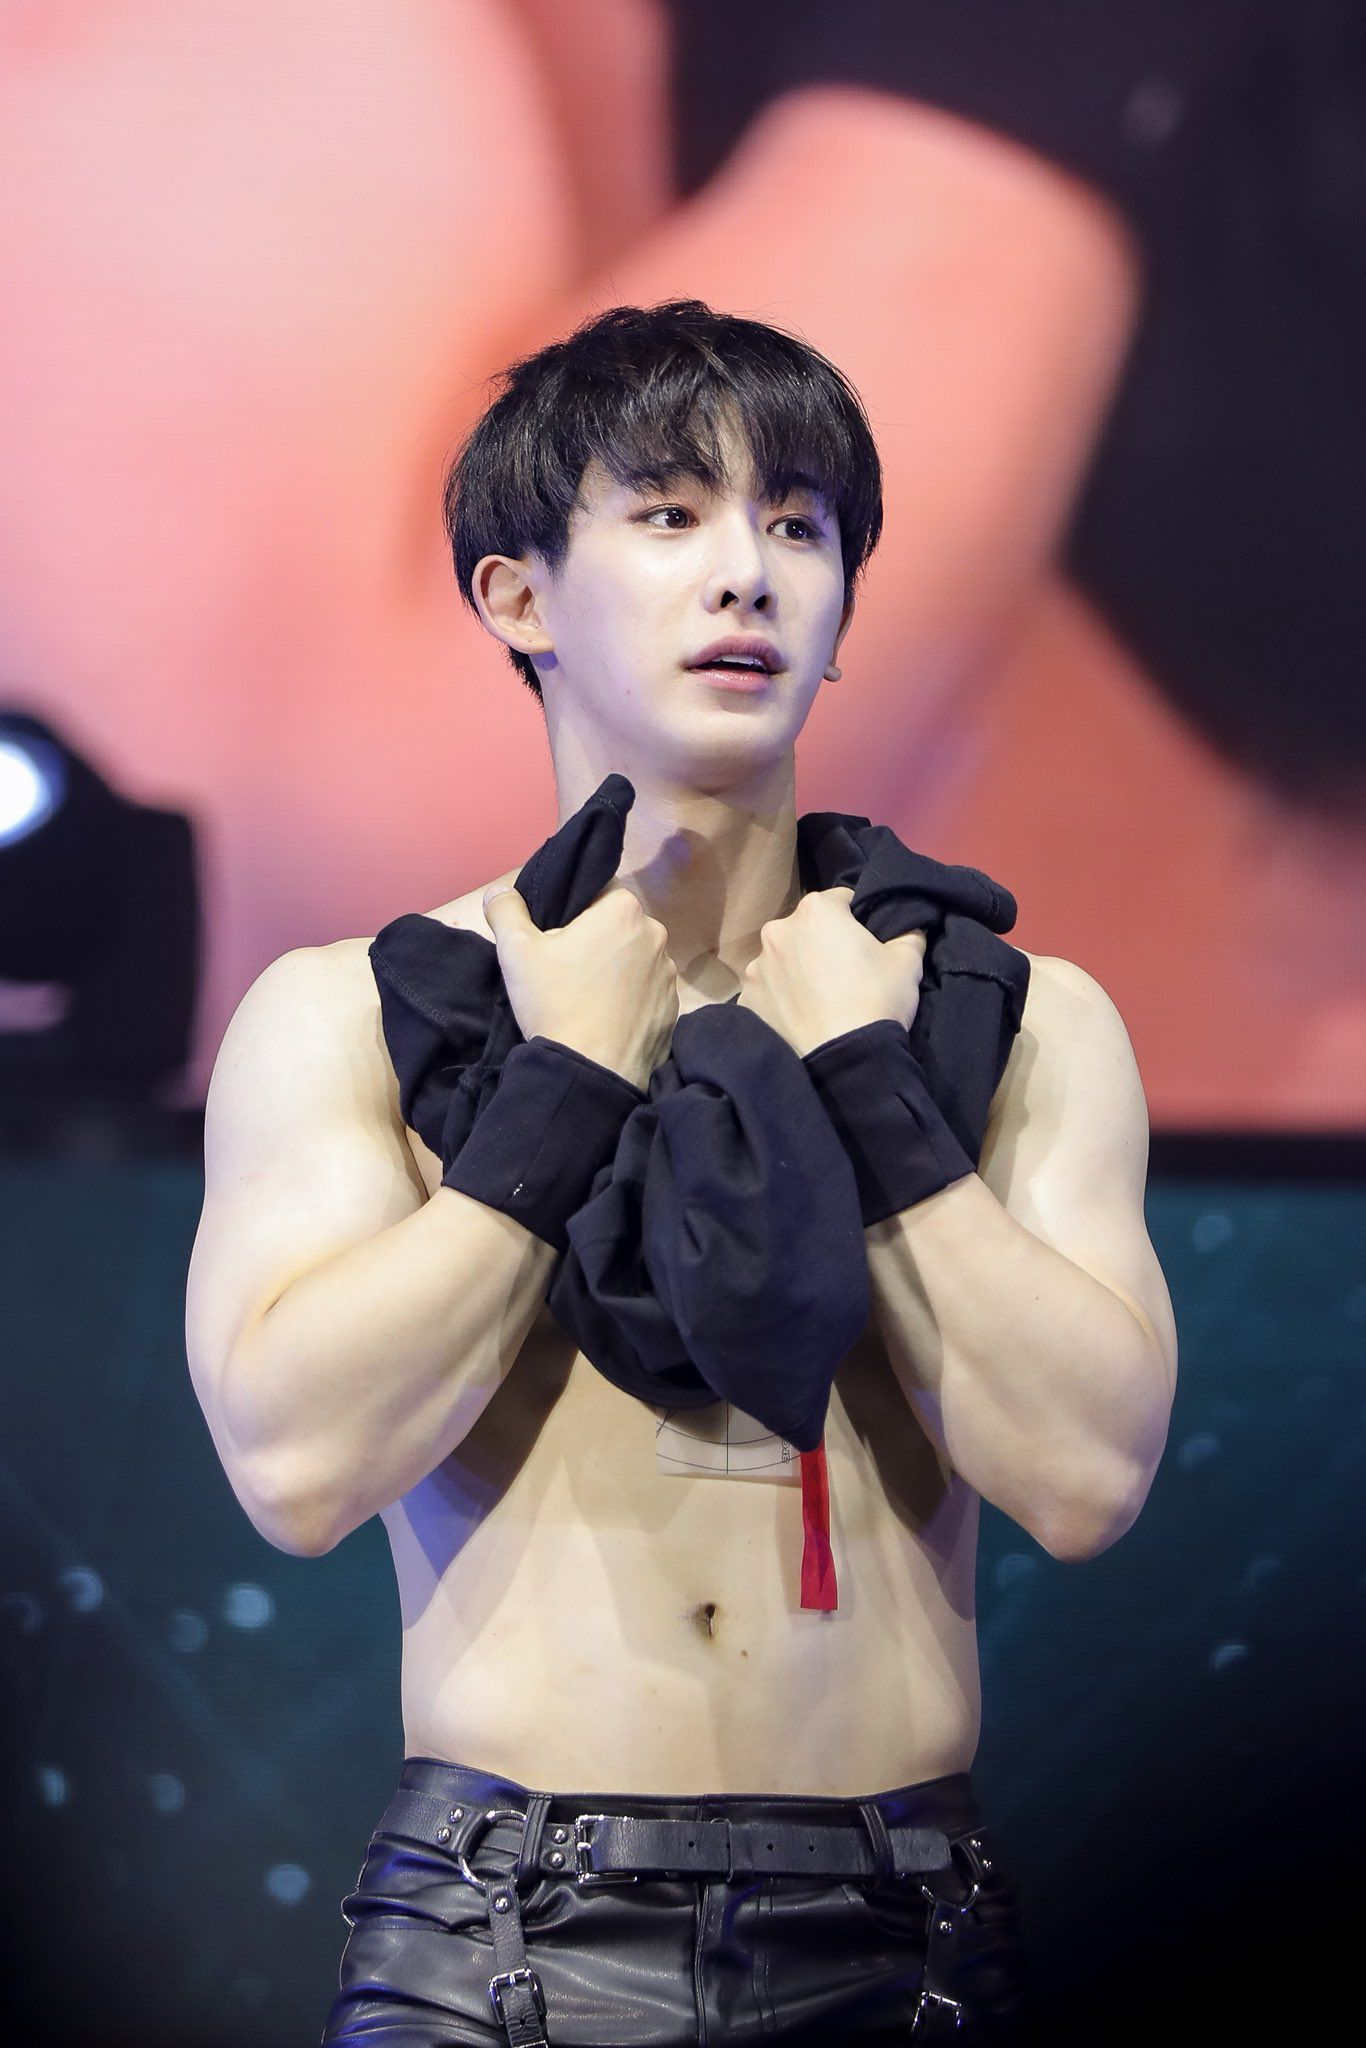 Pin By Monbabe On Monsta X Monsta X Wonho Monsta X Wonho Abs